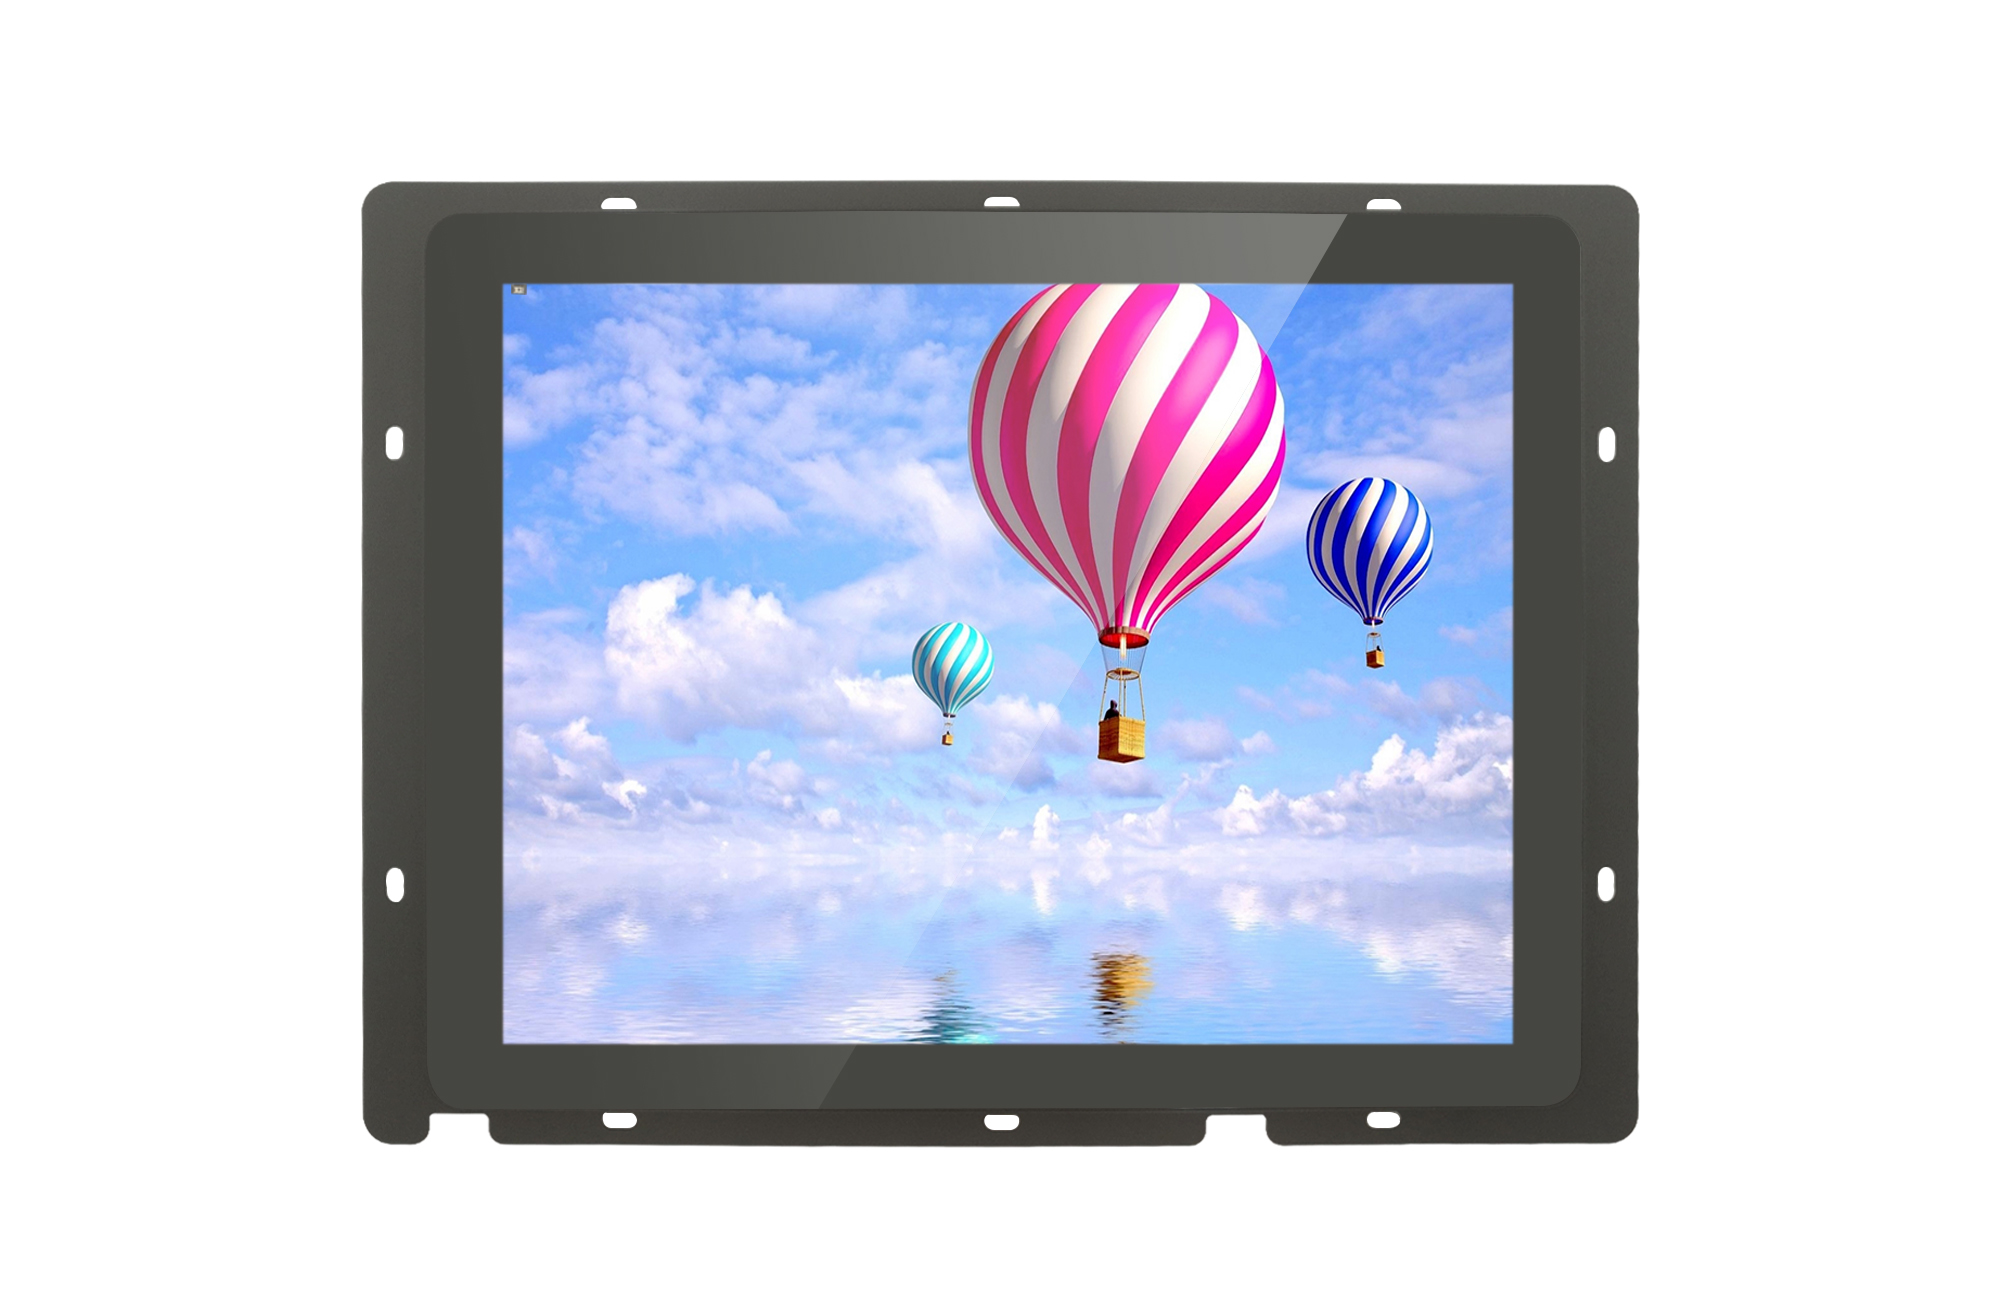 15 Inch Android Based All-In-One Panel PC